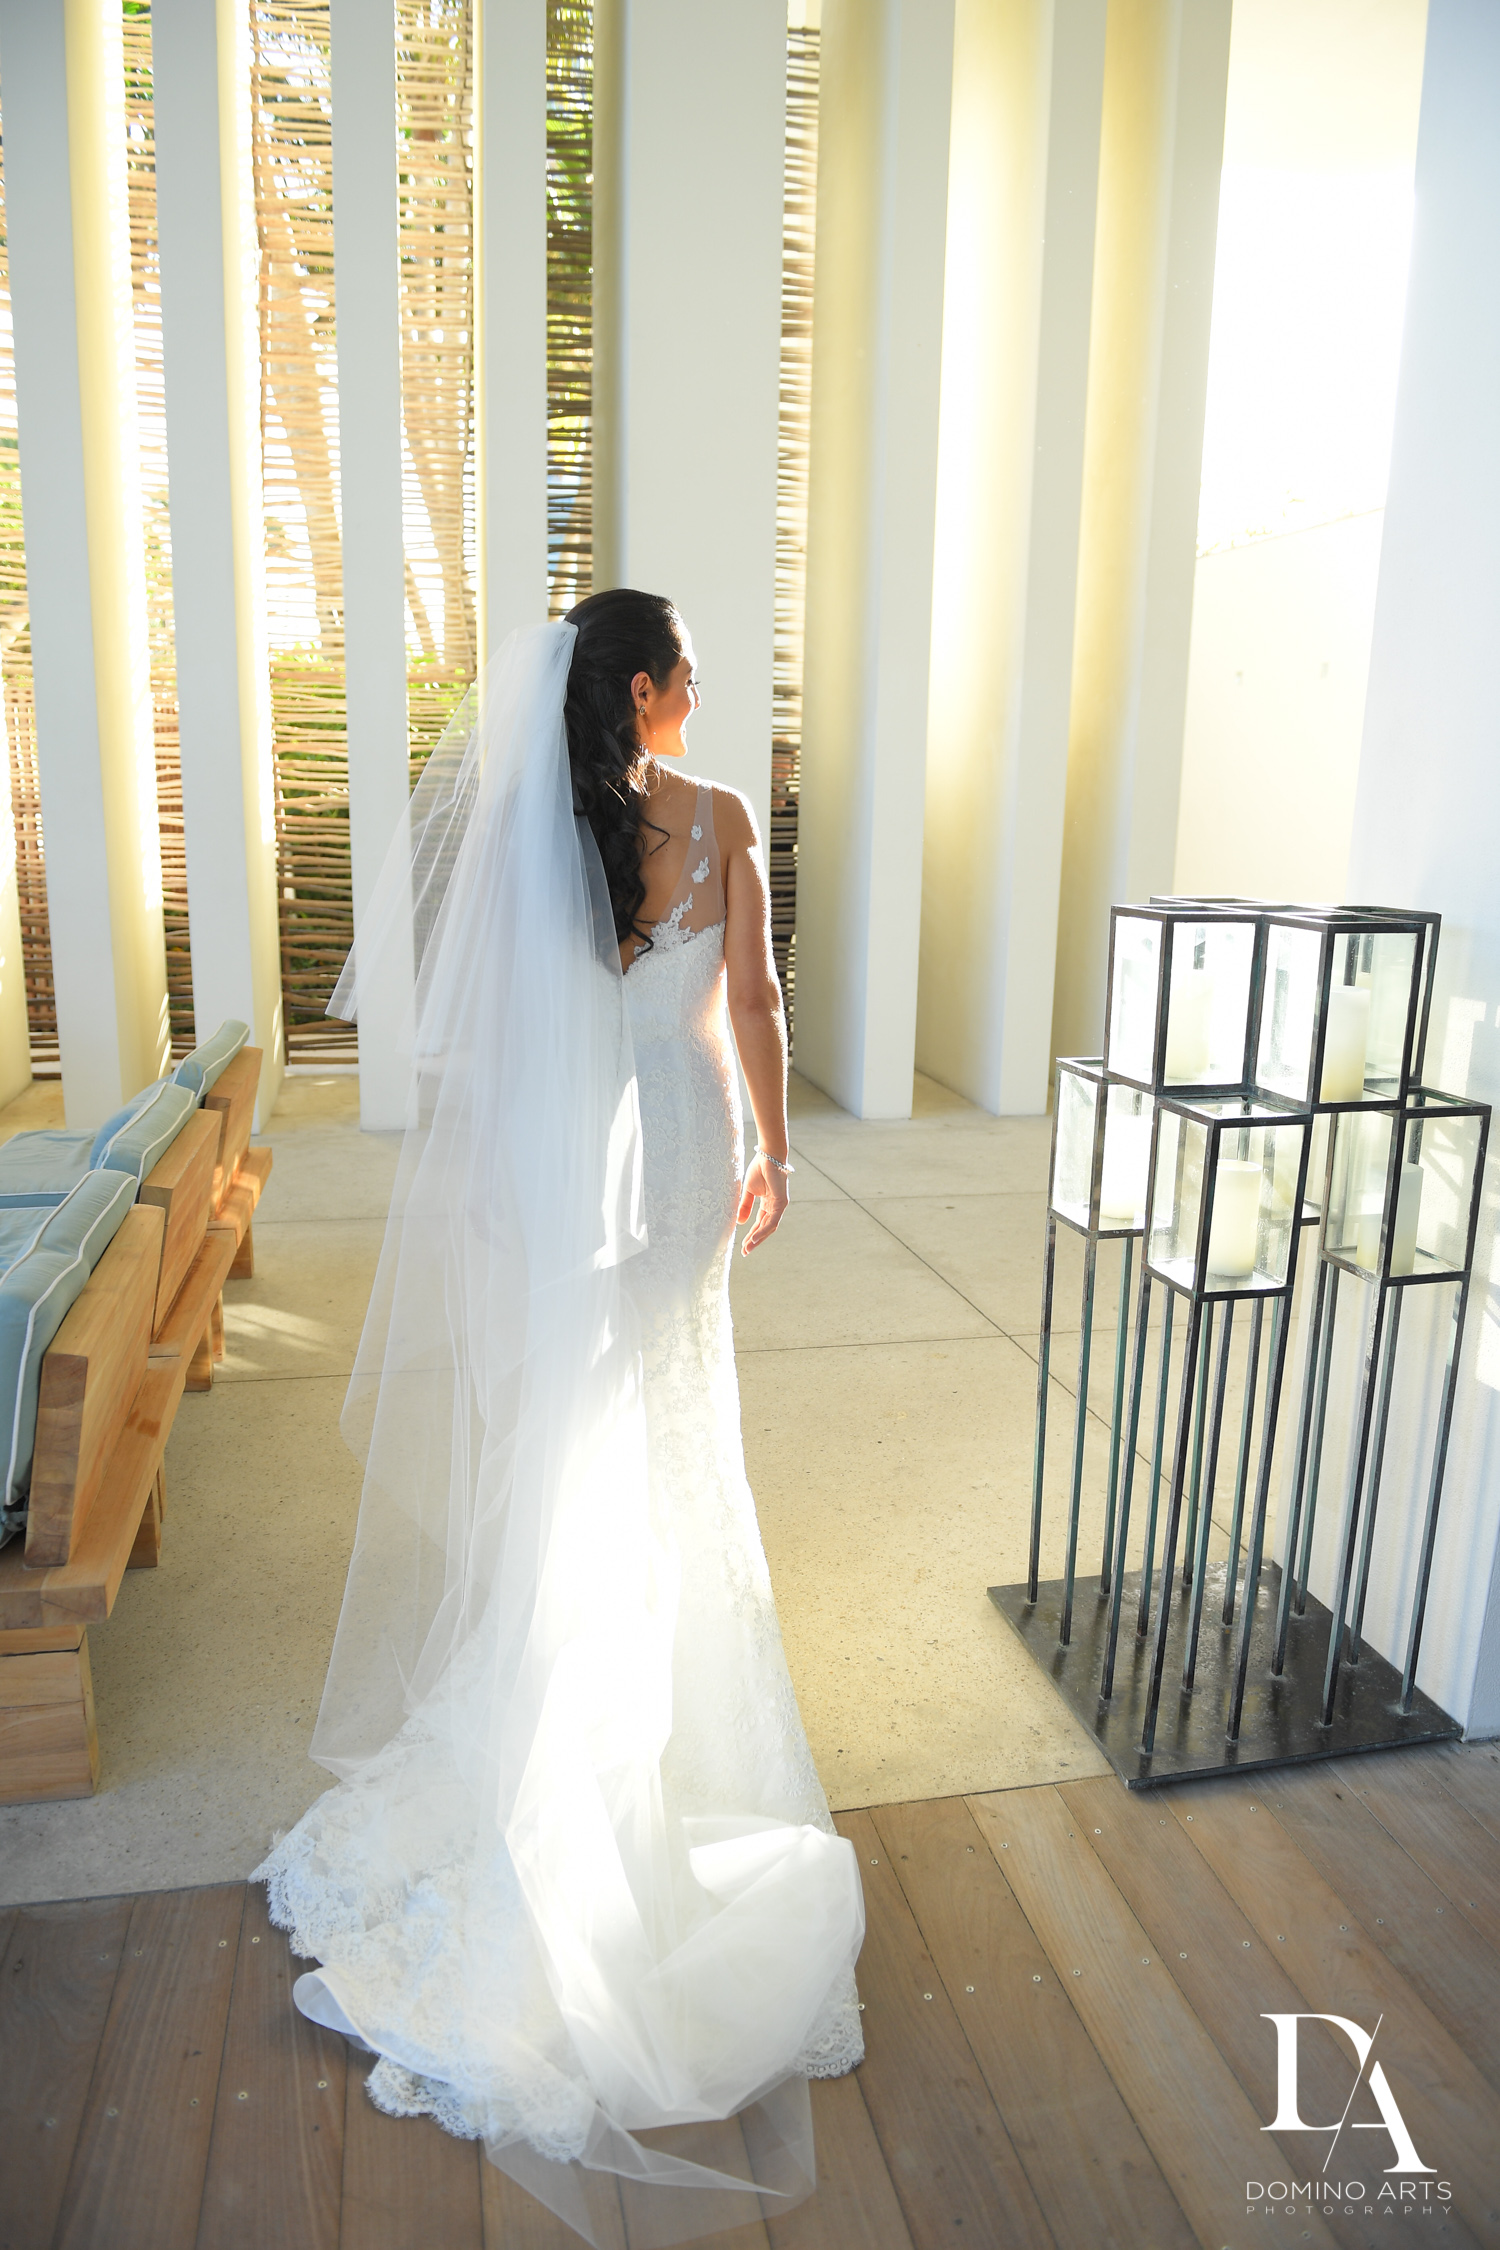 Bride Portrait at W Hotel Miami